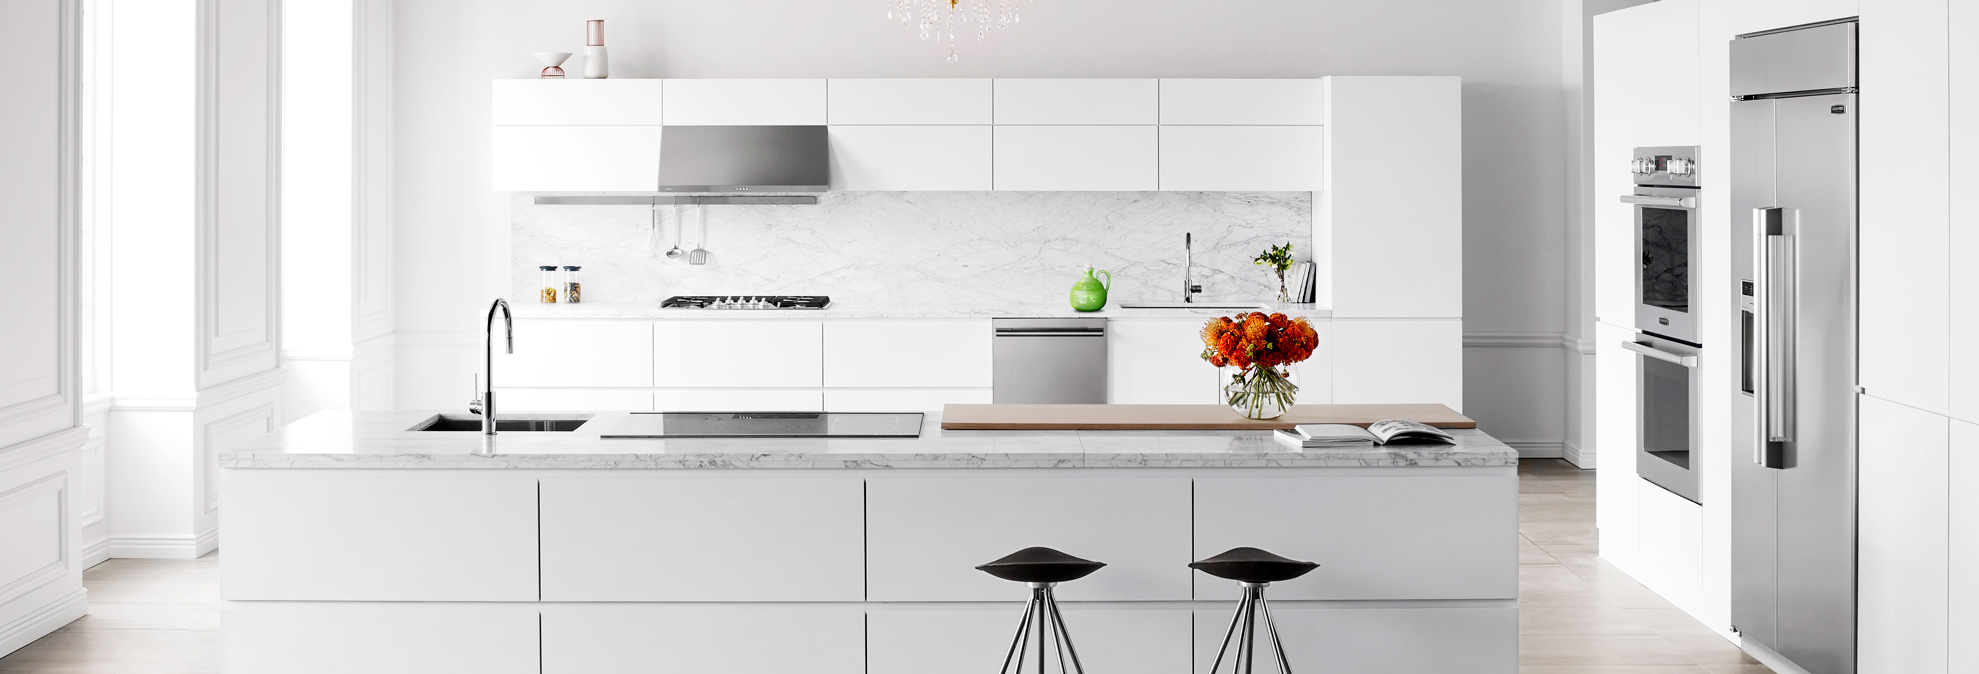 matching kitchen appliance packages kitchen & bath remodeling